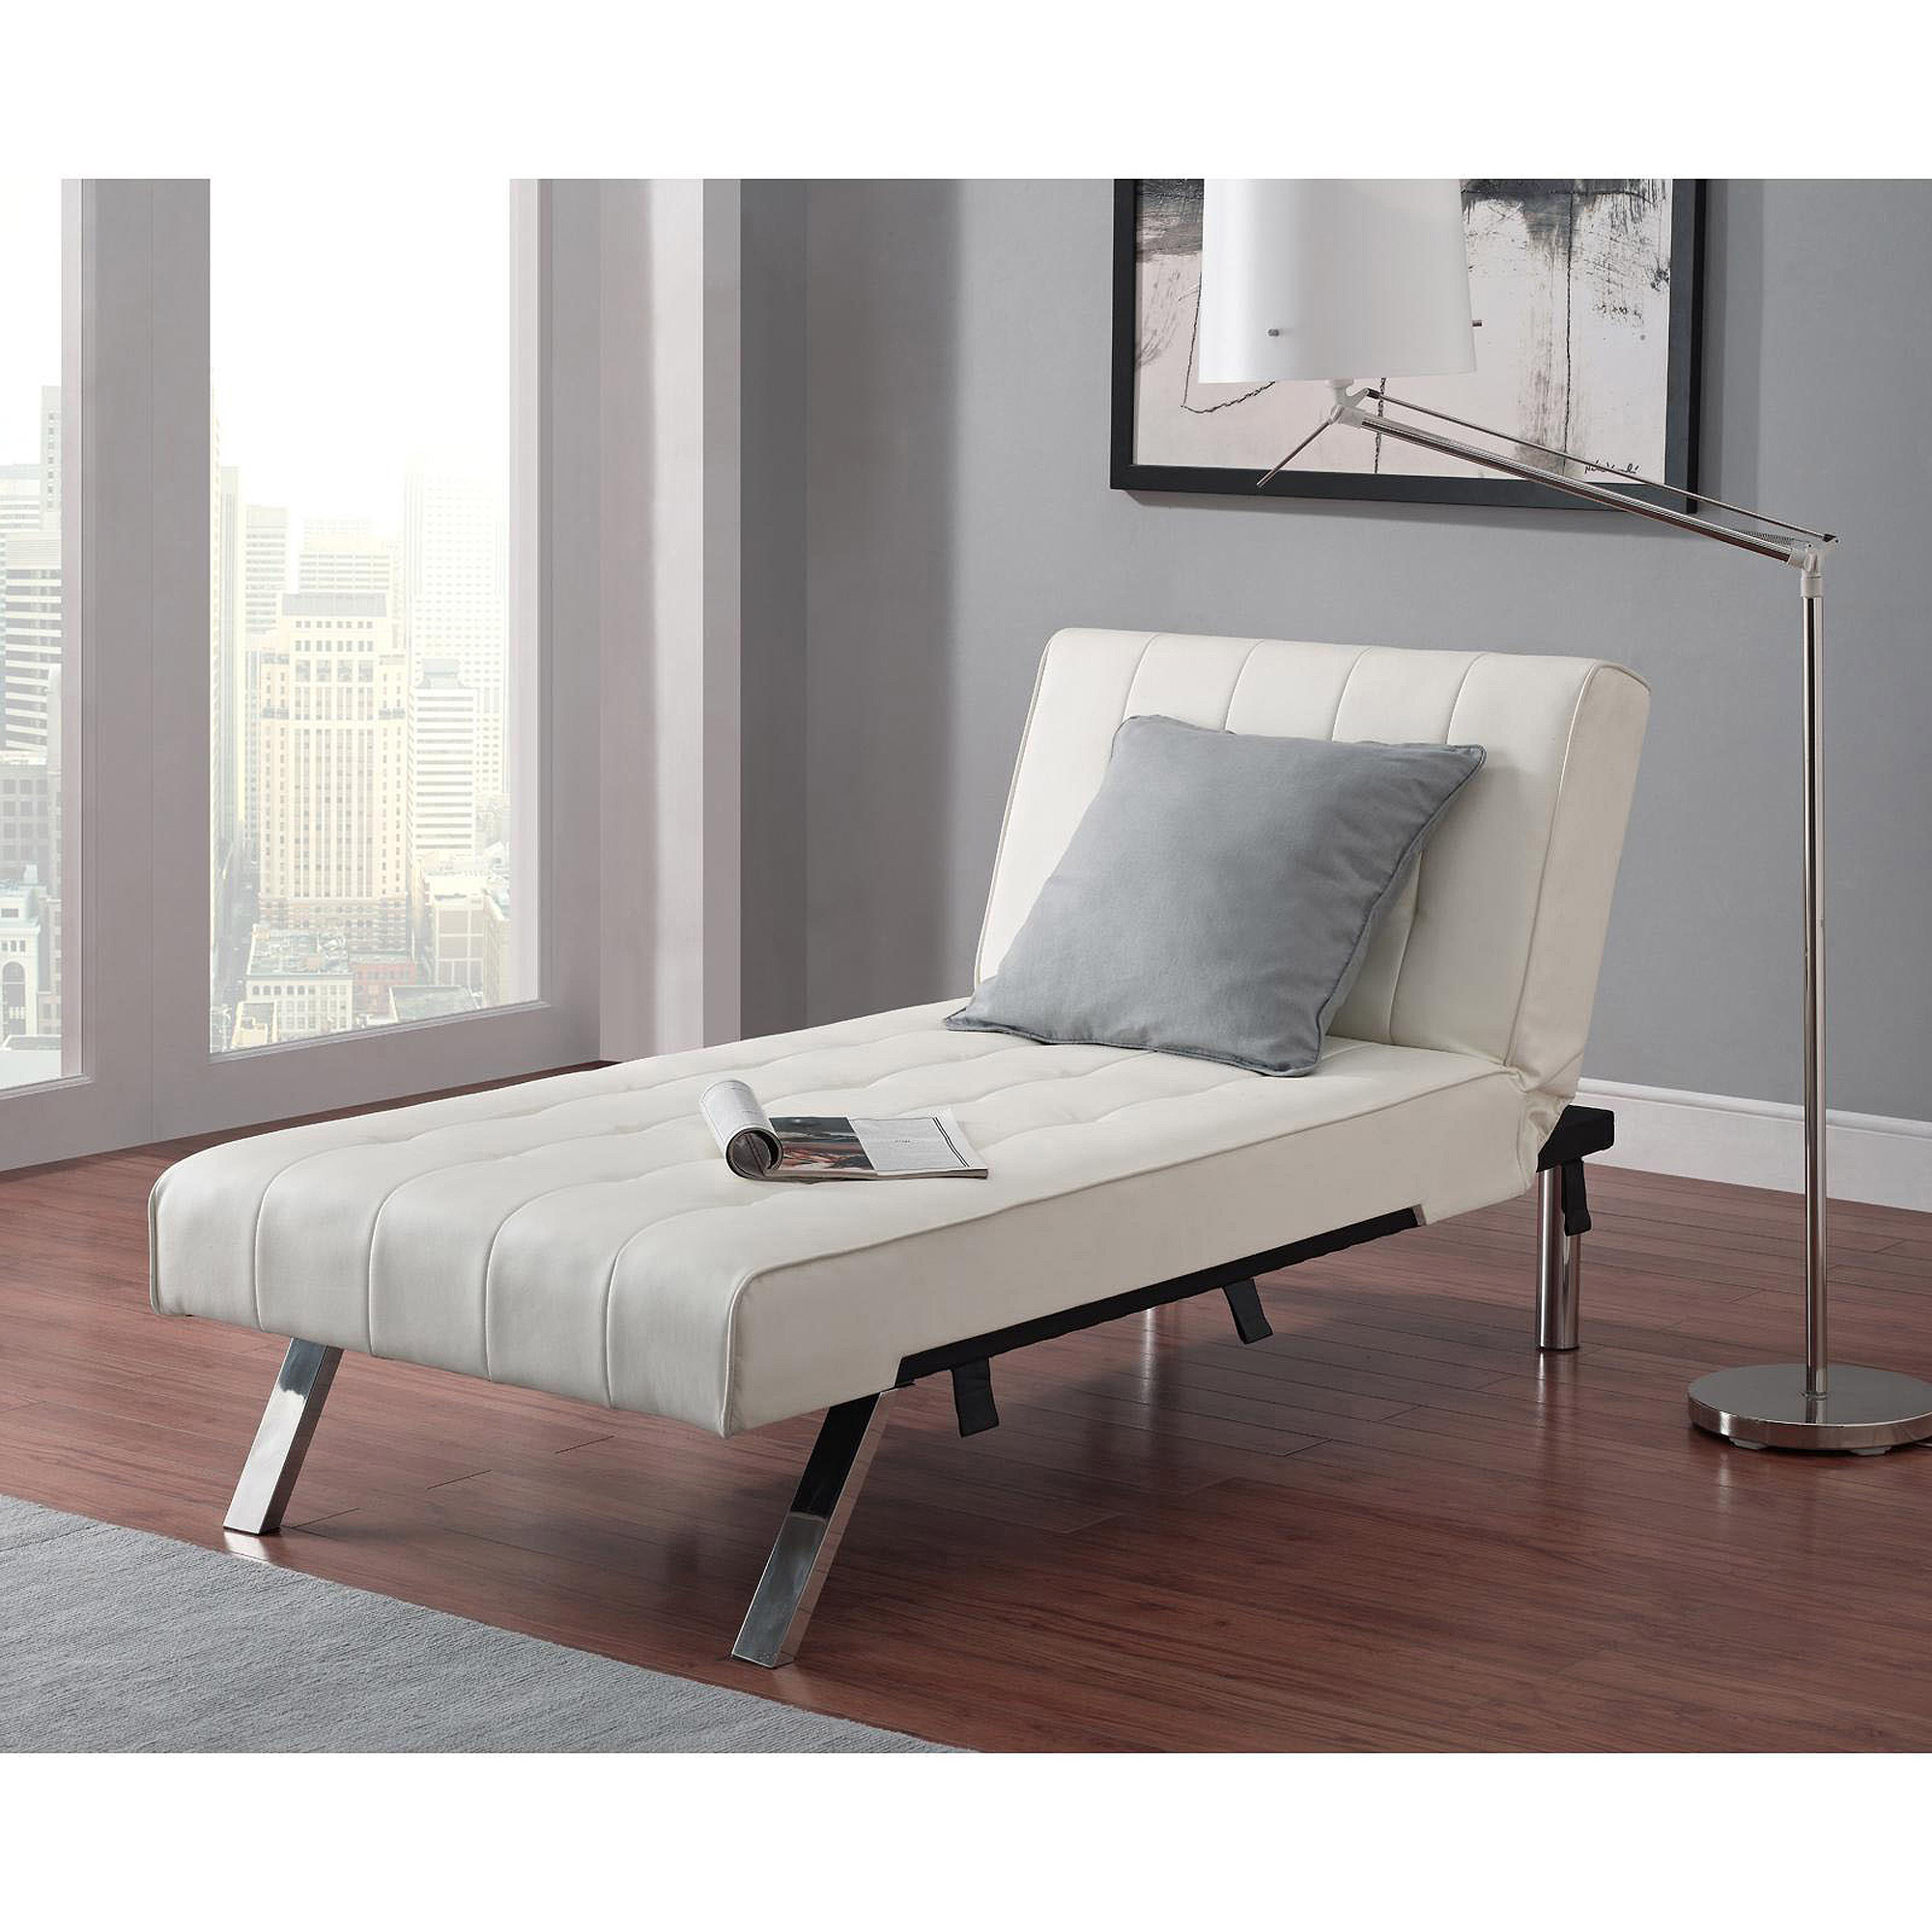 Image of: Futon Cushion Sofa Bed